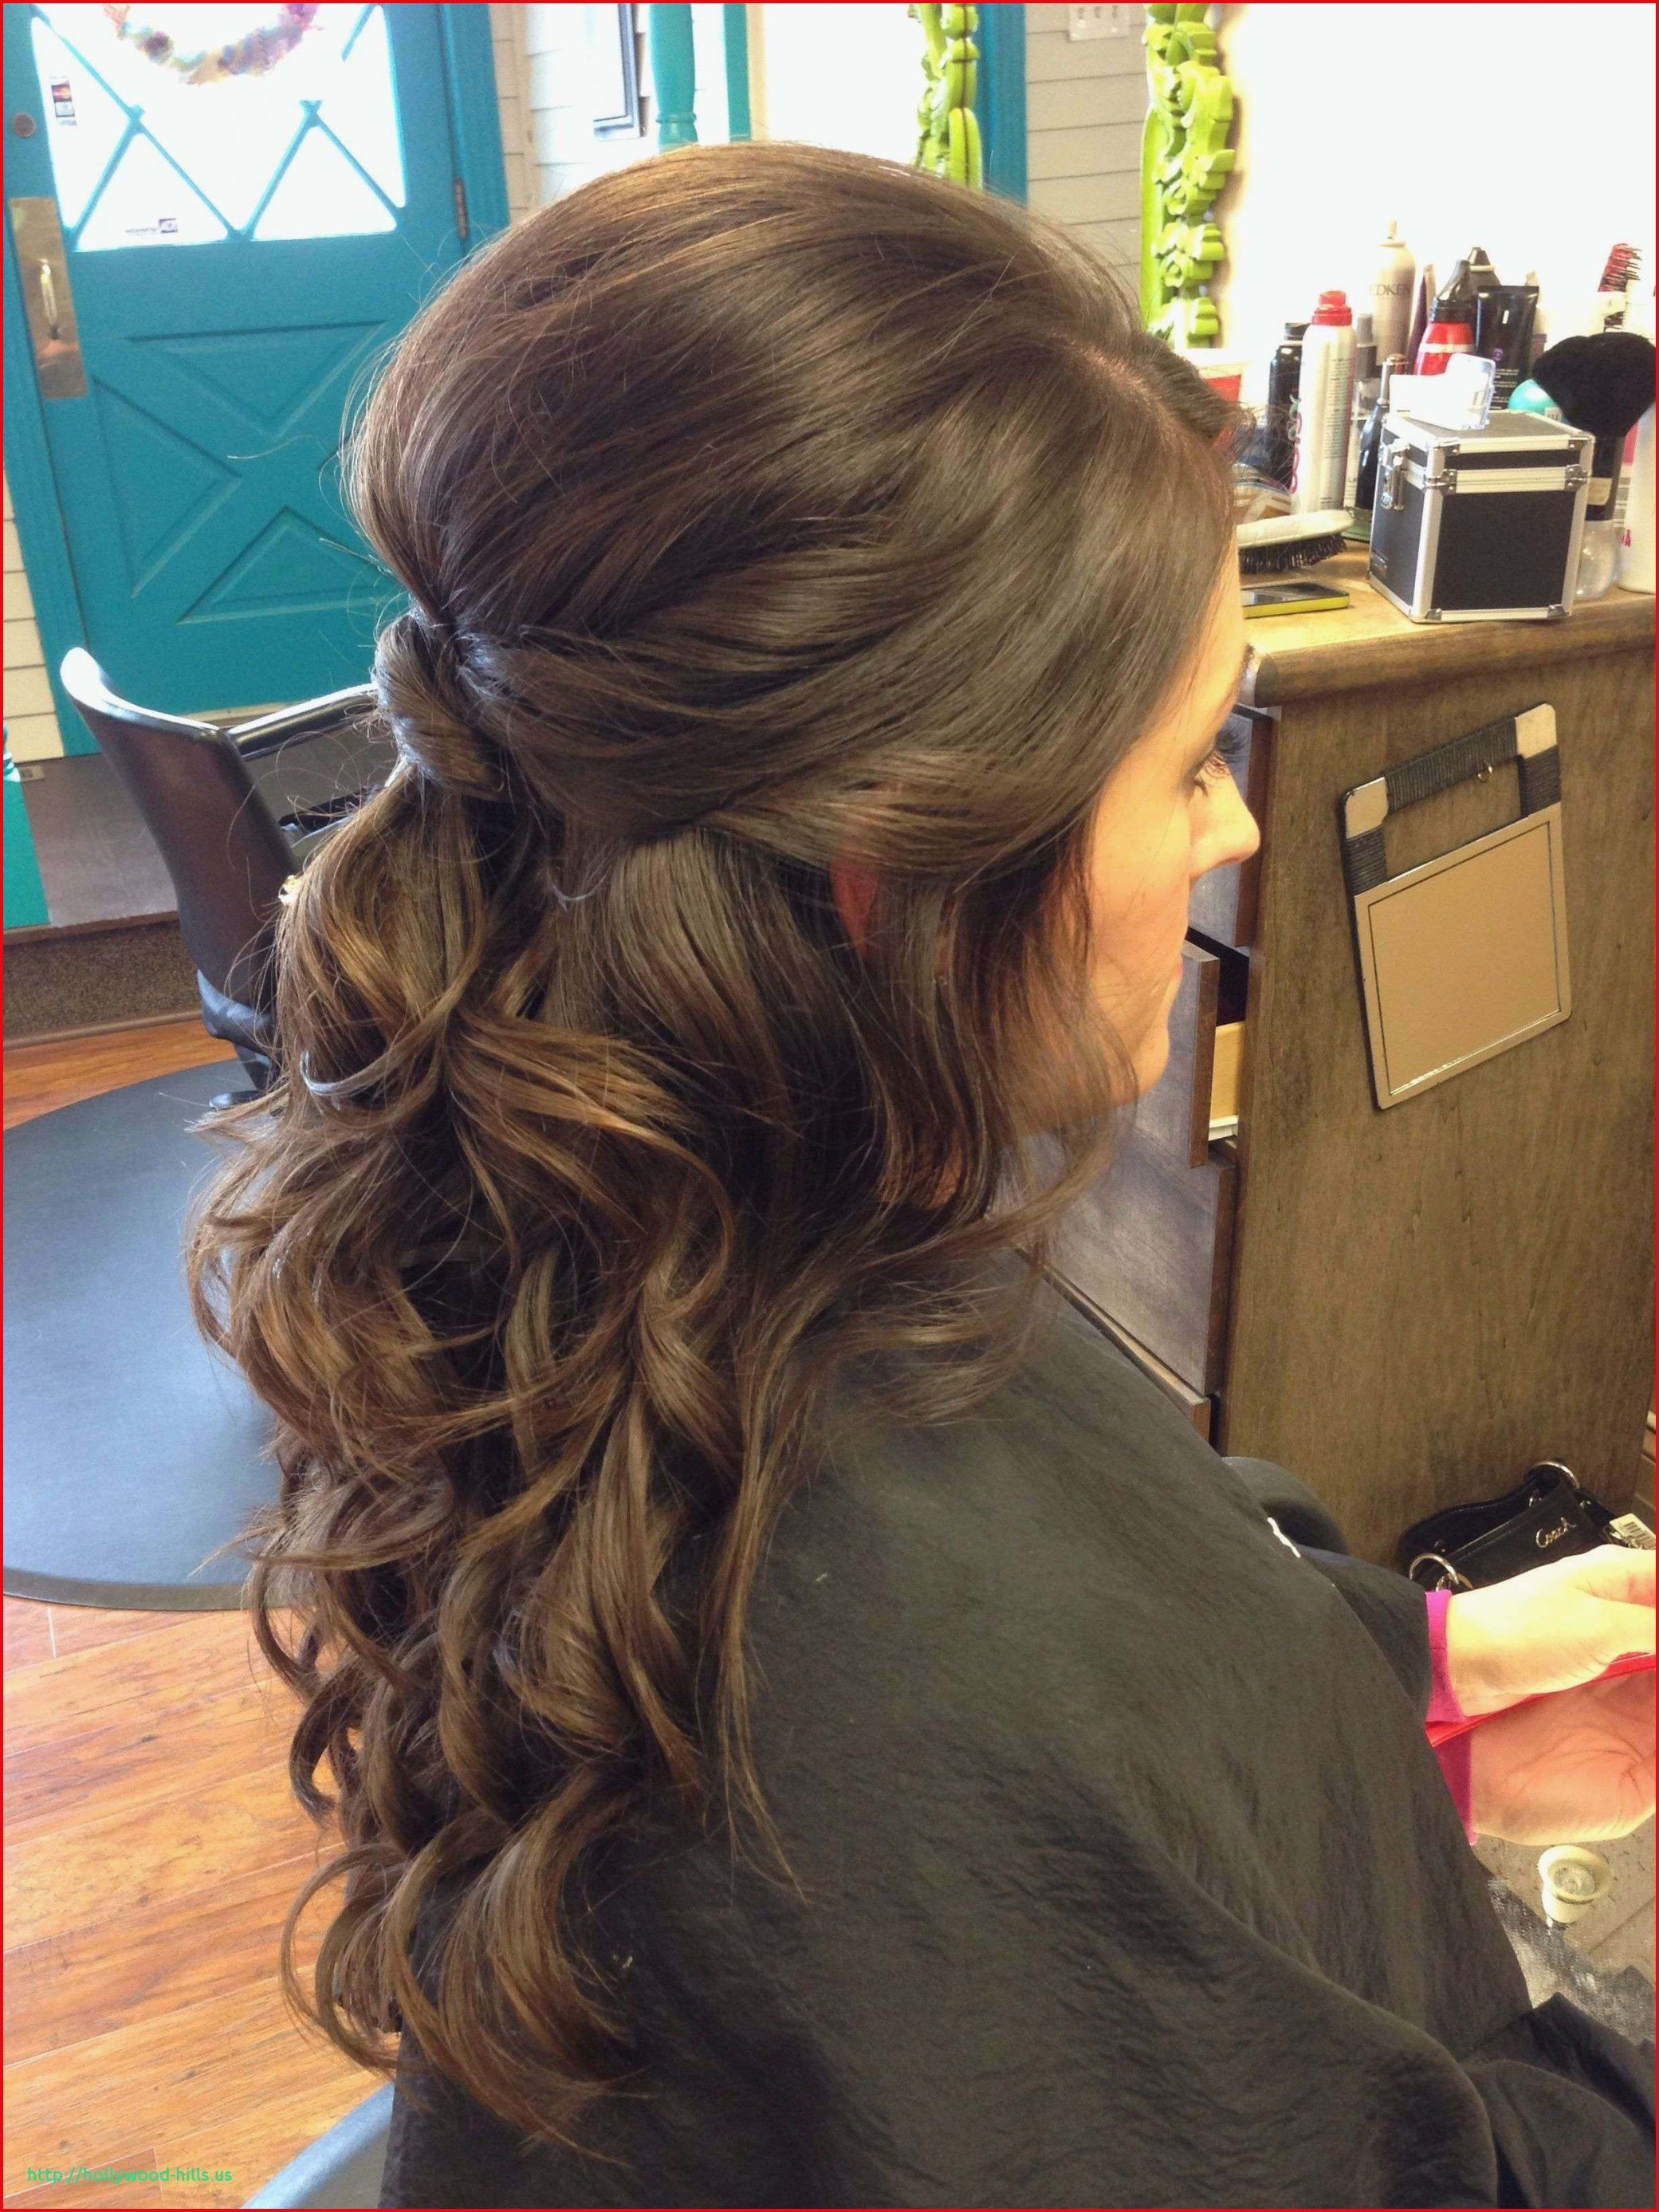 50 Cute Updos For Natural Hair Natural hair updos are not only practical, they may be very ...